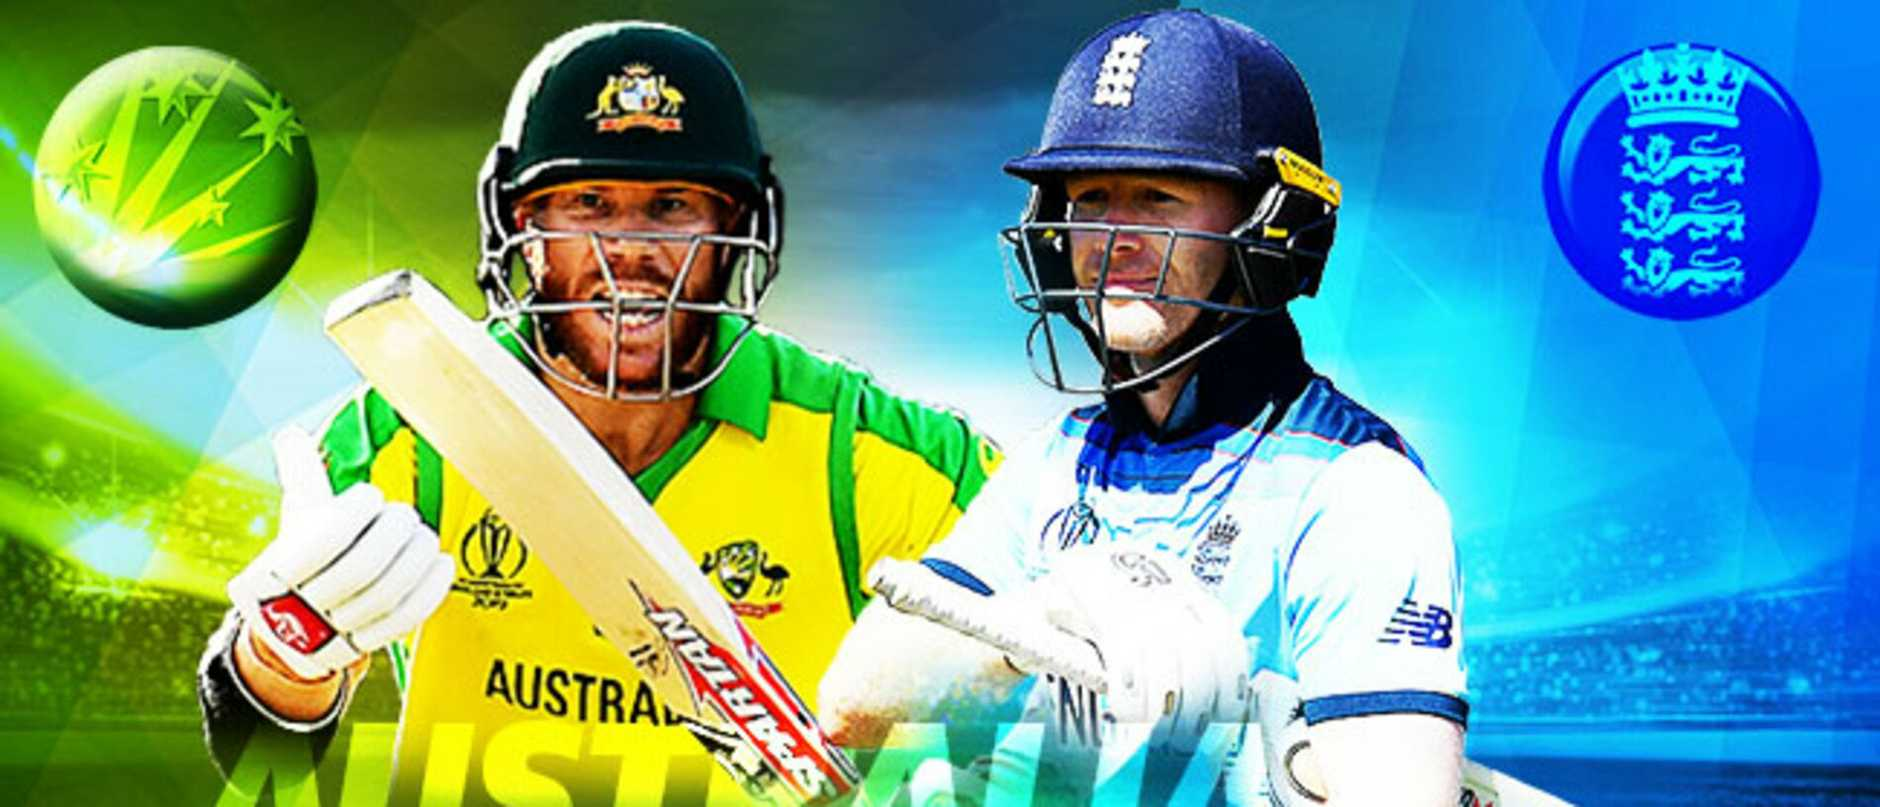 Australia v England. Cricket News